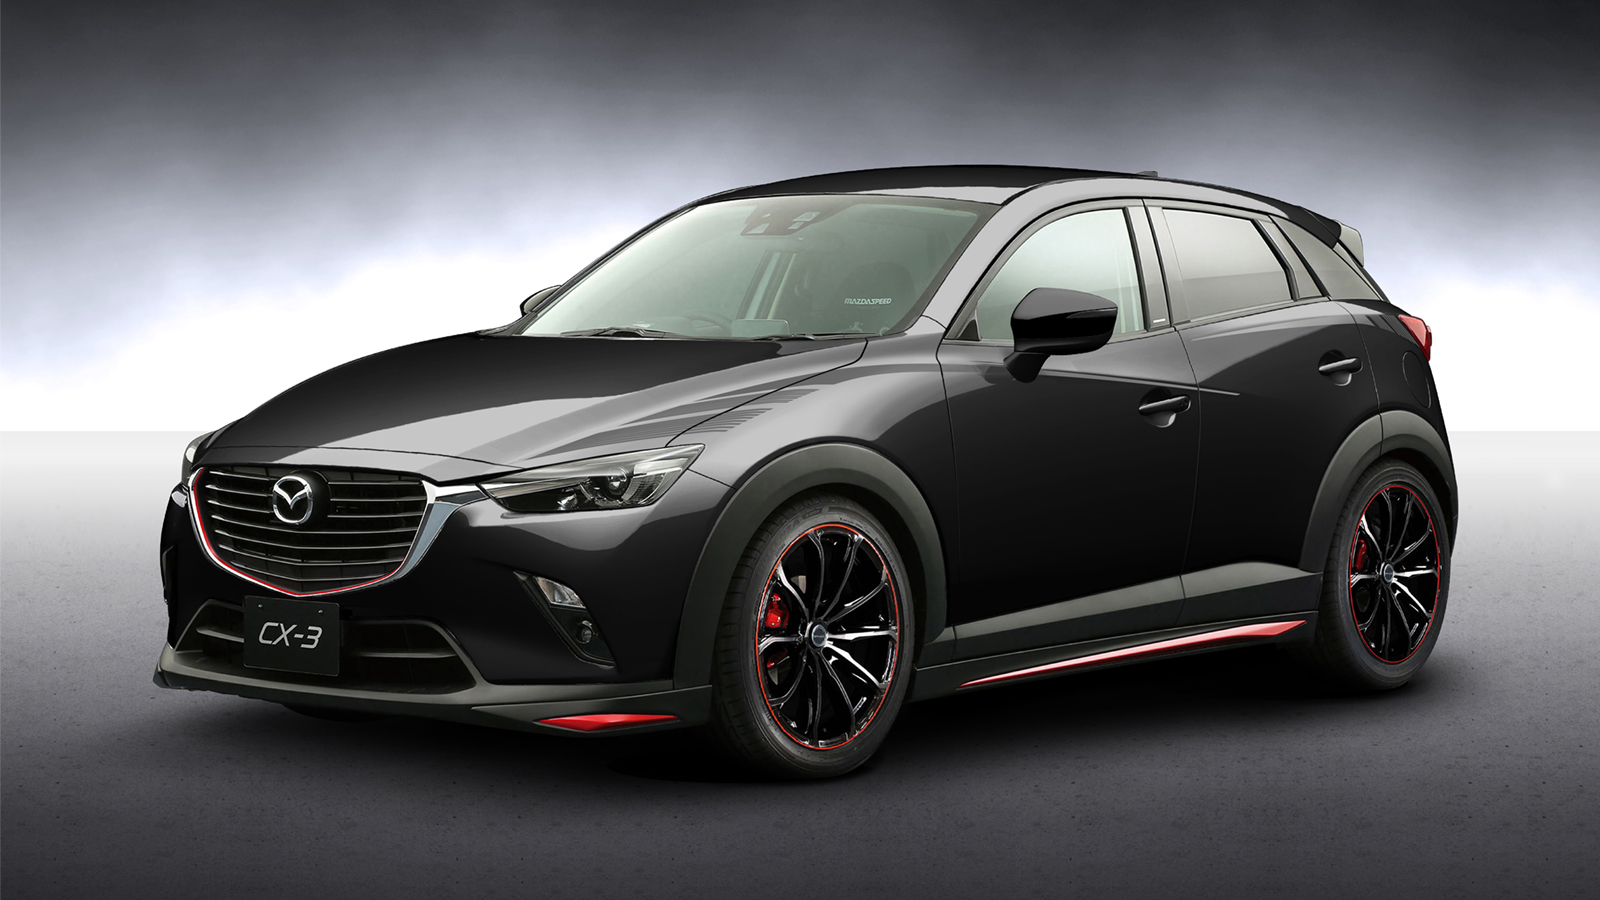 mazda cx3 racing concept teased ahead of tokyo auto salon